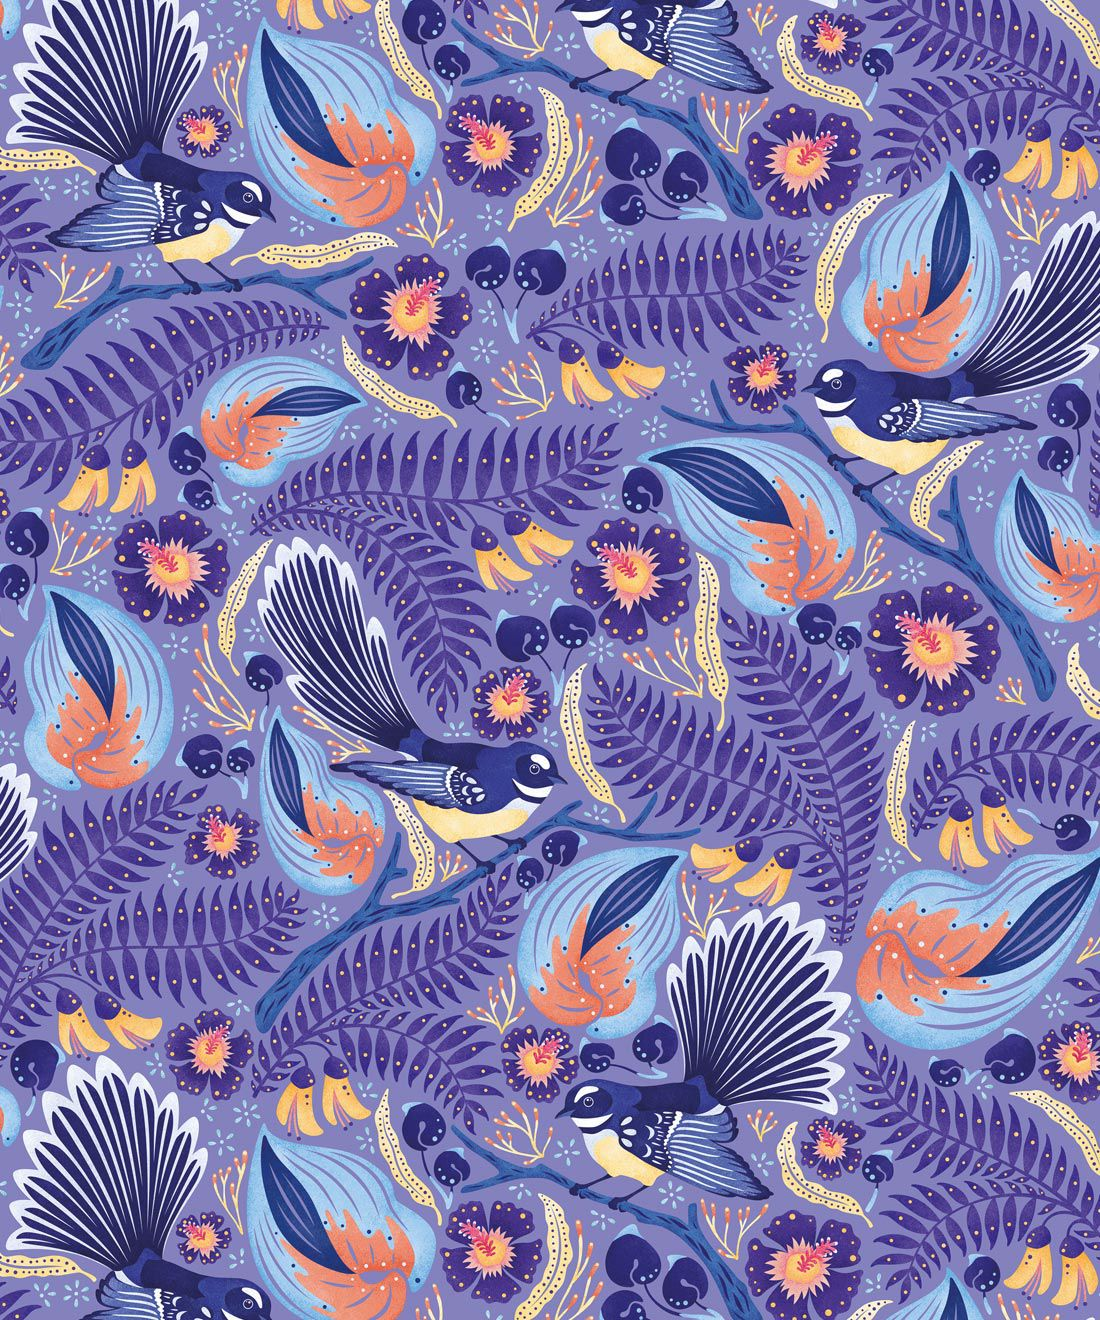 Faintails Wallpaper • New Zealand • Bird Wallpaper • Kowhai Tree • Kowhai Flowers • Blue Purple Wallpaper • Original Colorway